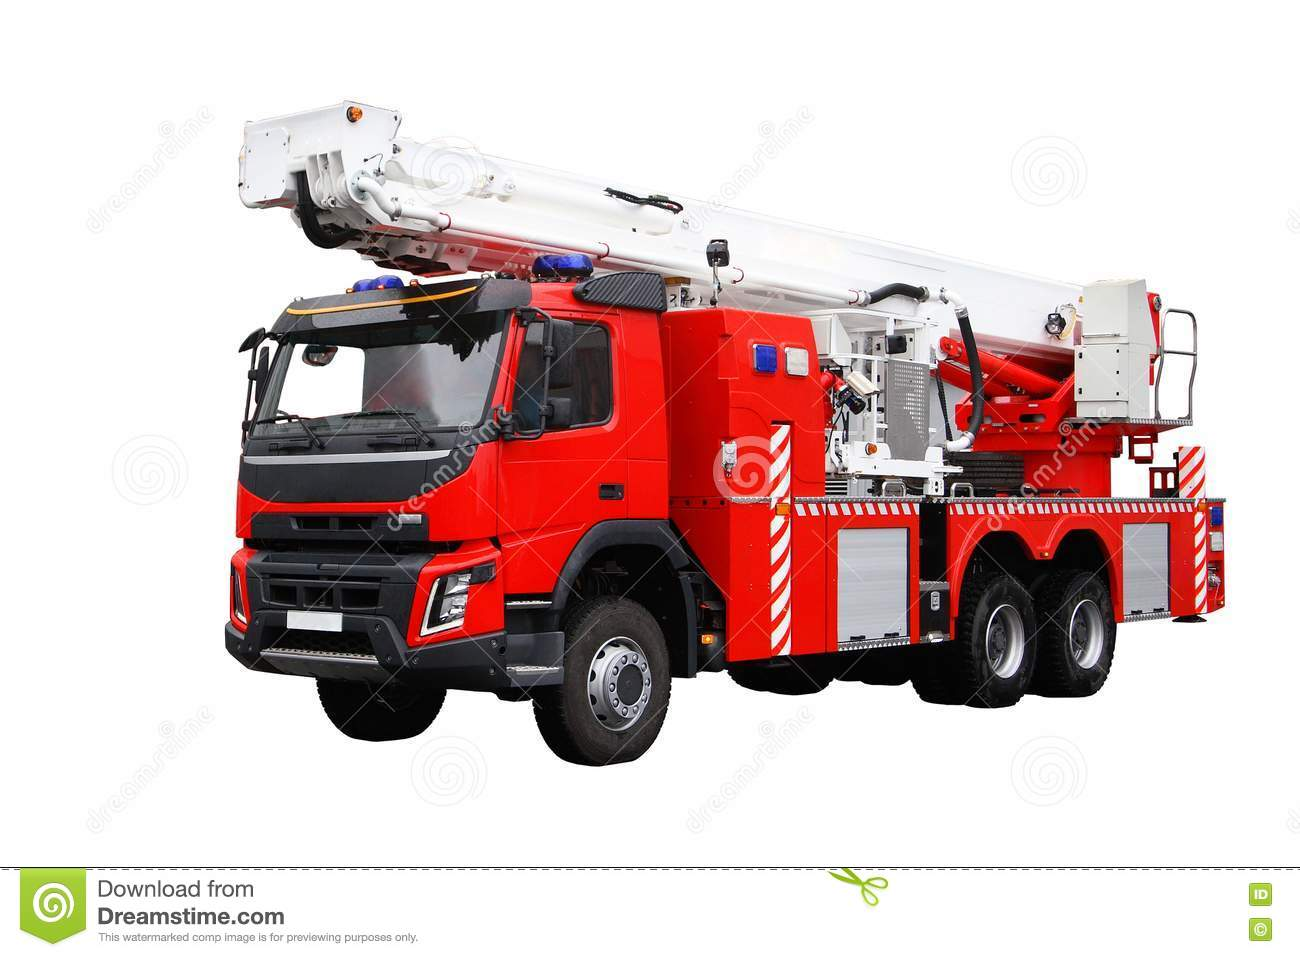 Red fire truck. Rescuers.